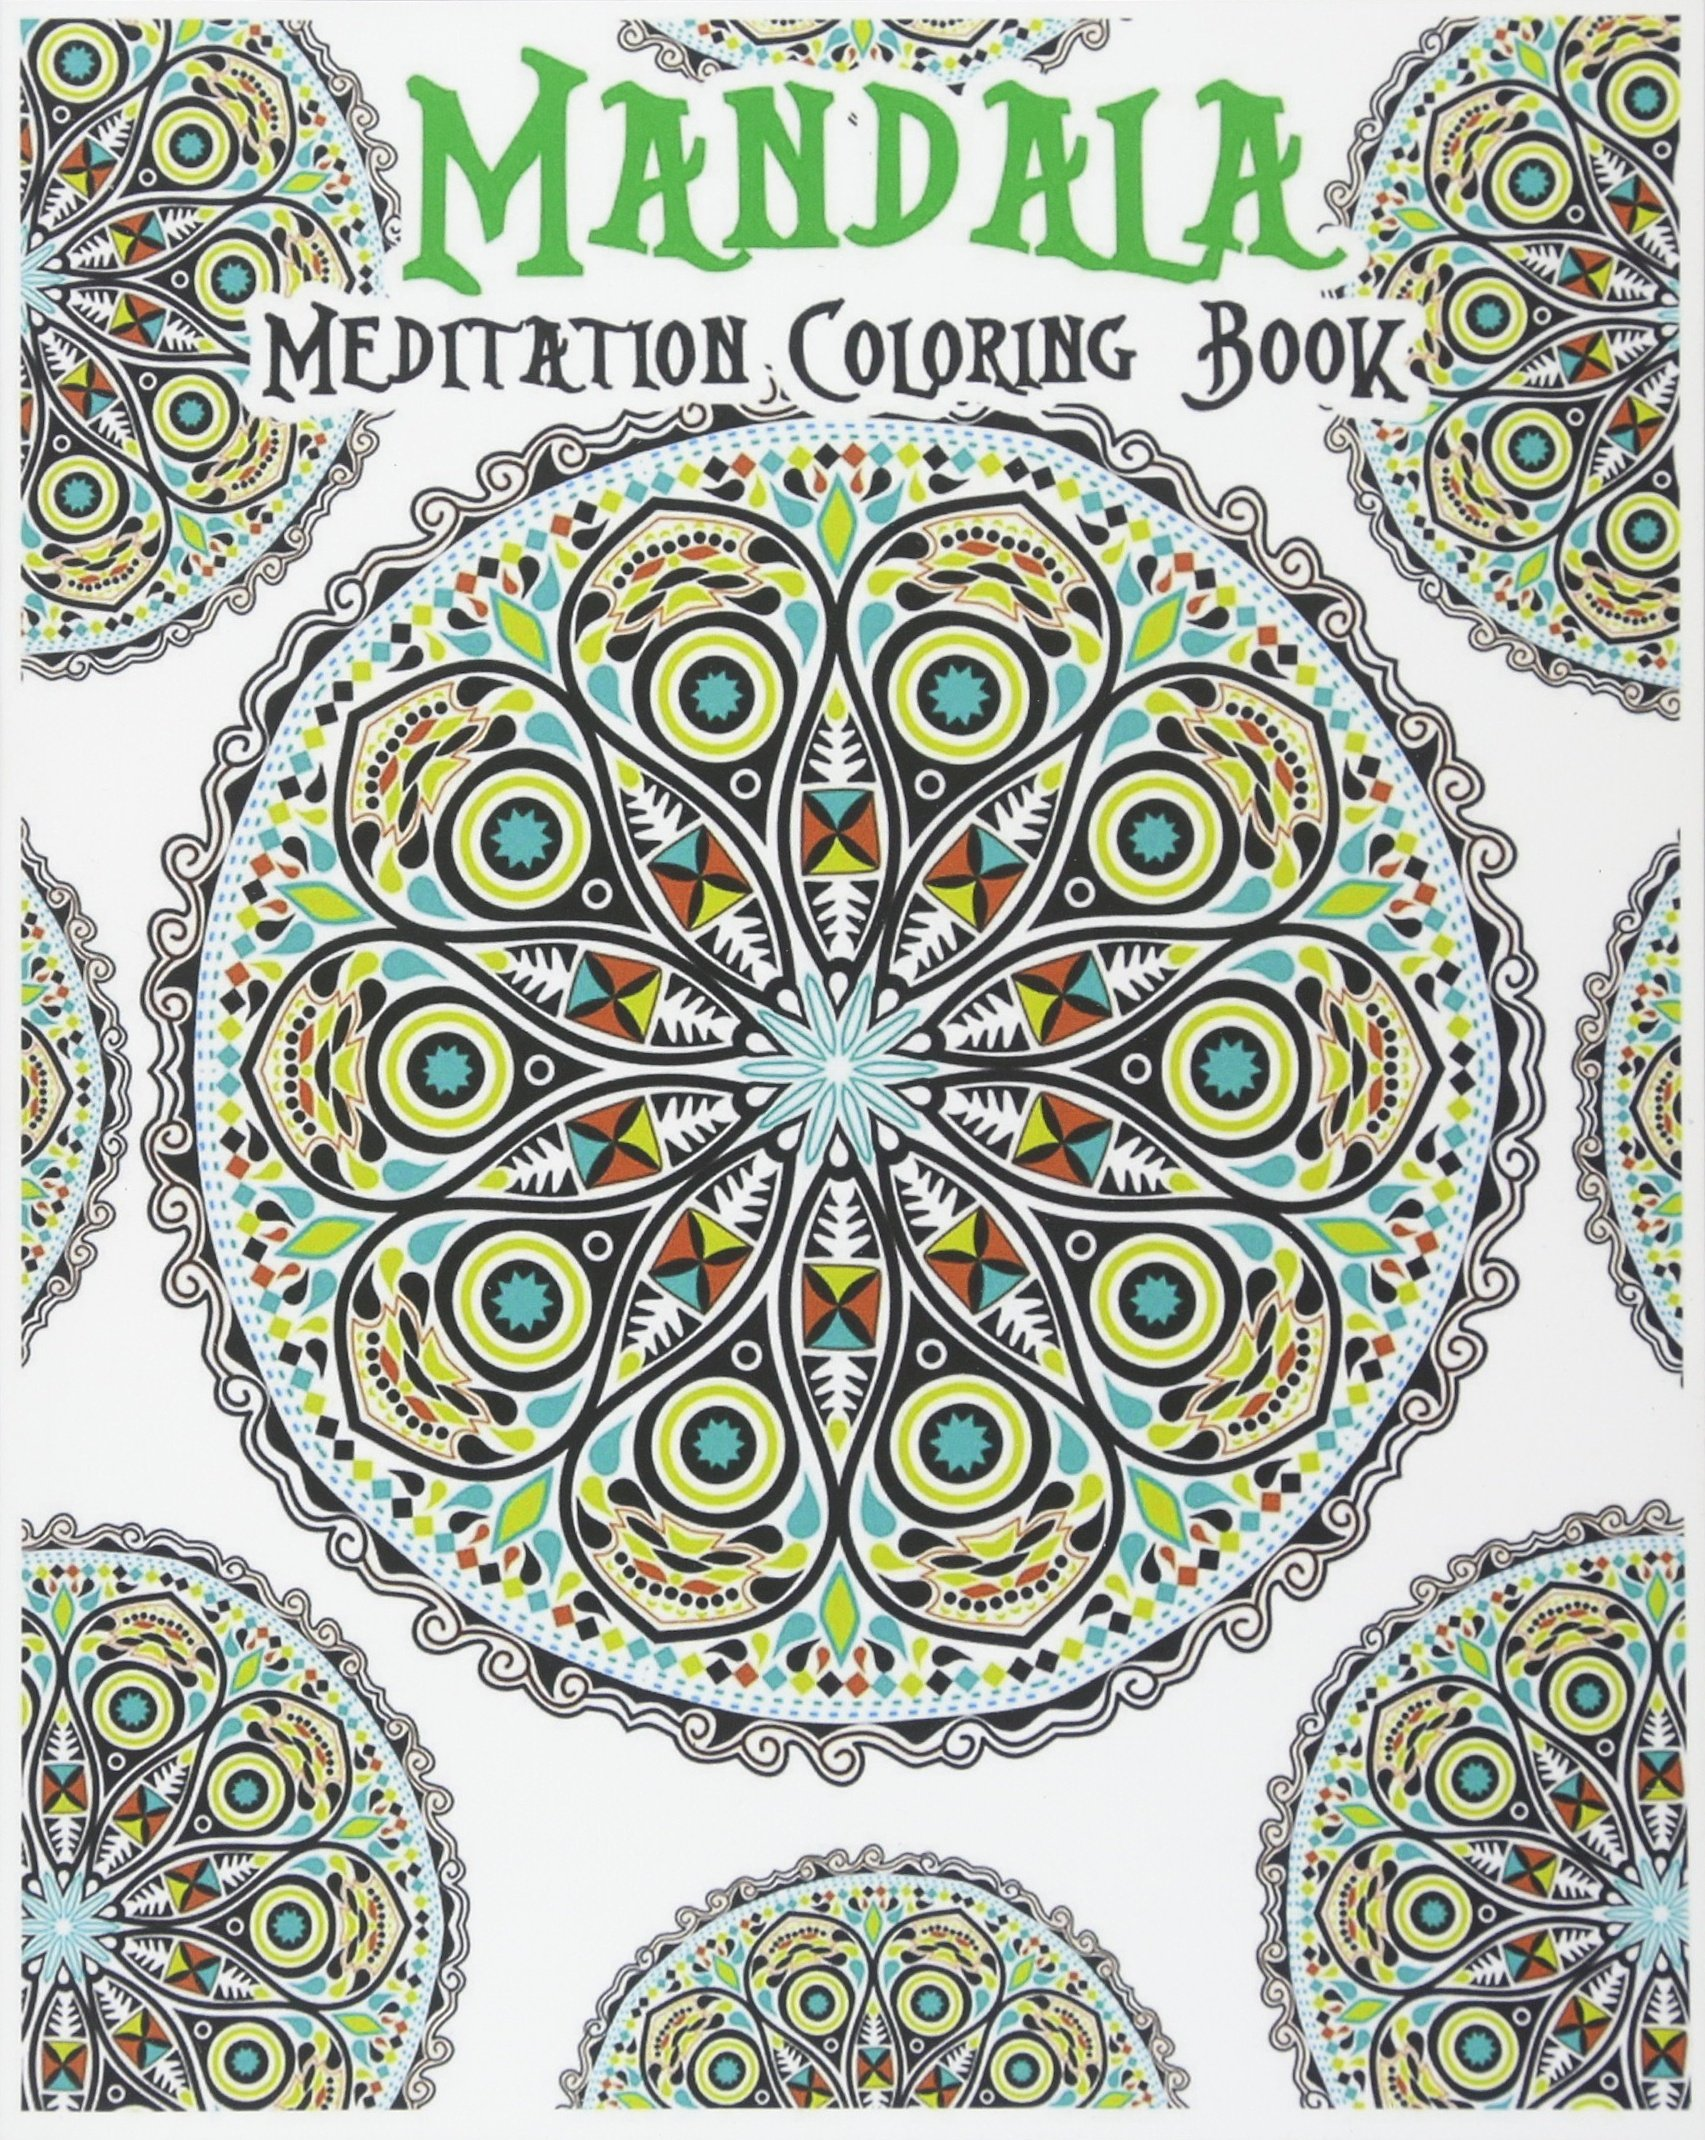 Mandala Meditation Coloring Book 100 Coloring Pages For Peace And